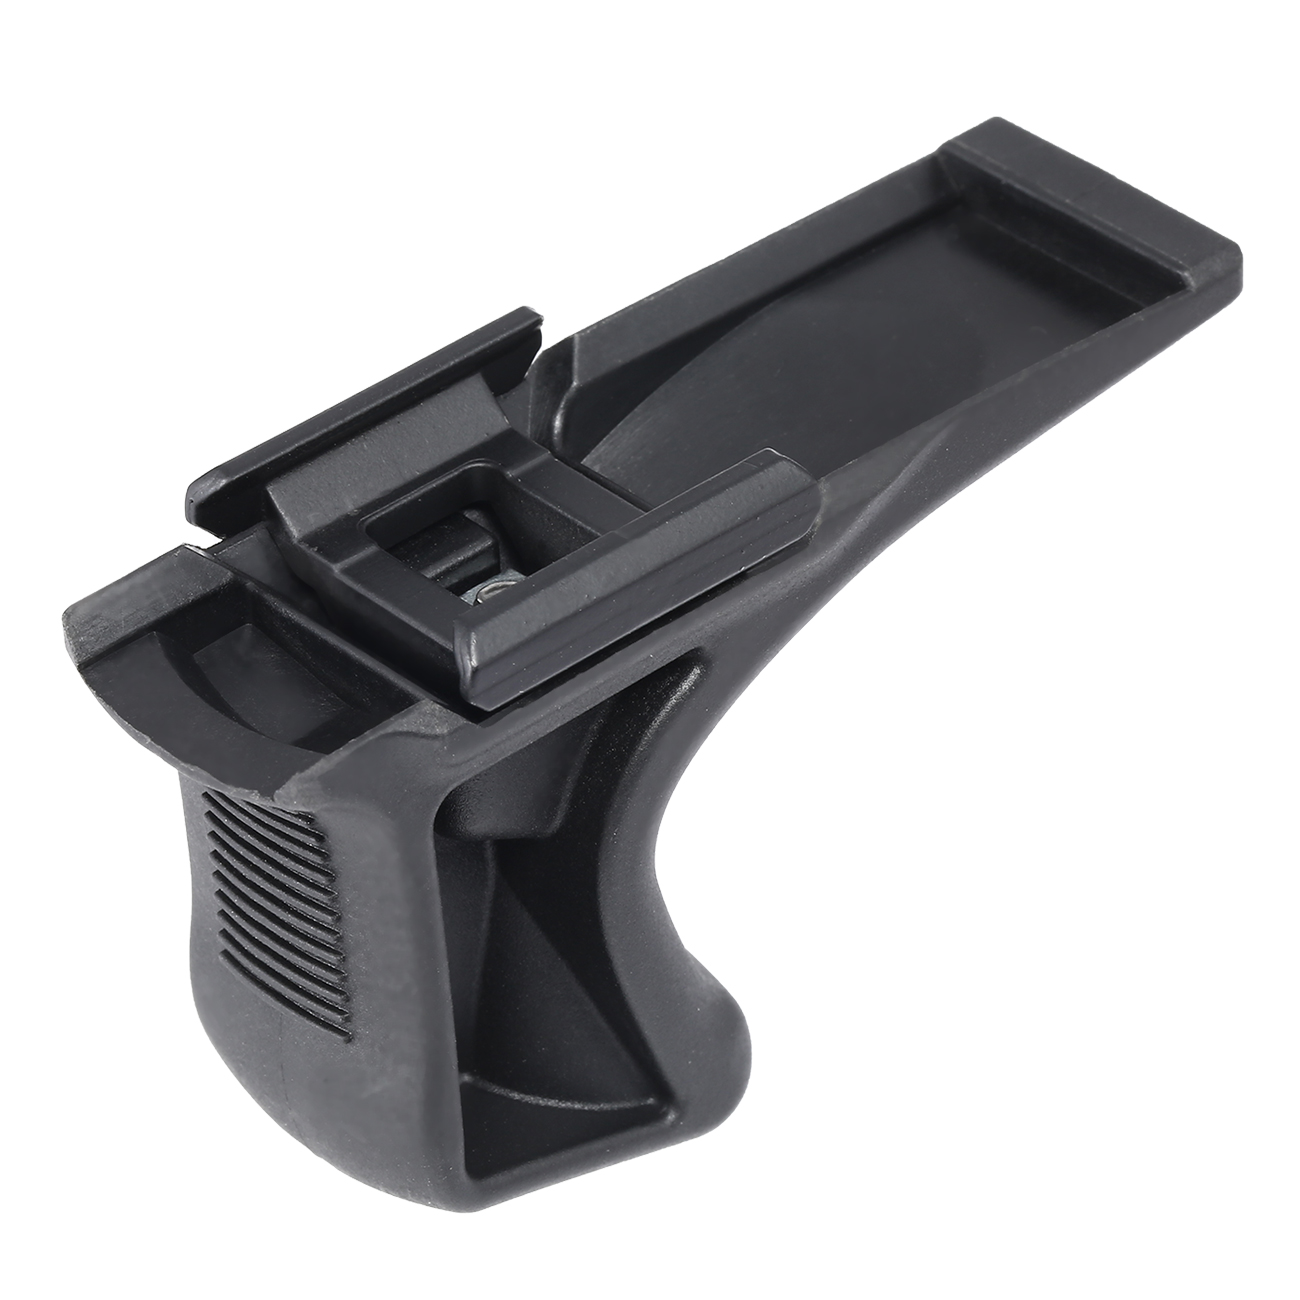 Evolution Hand Rest / KAG Vertical Grip für 20 - 22 mm Schienen schwarz 1